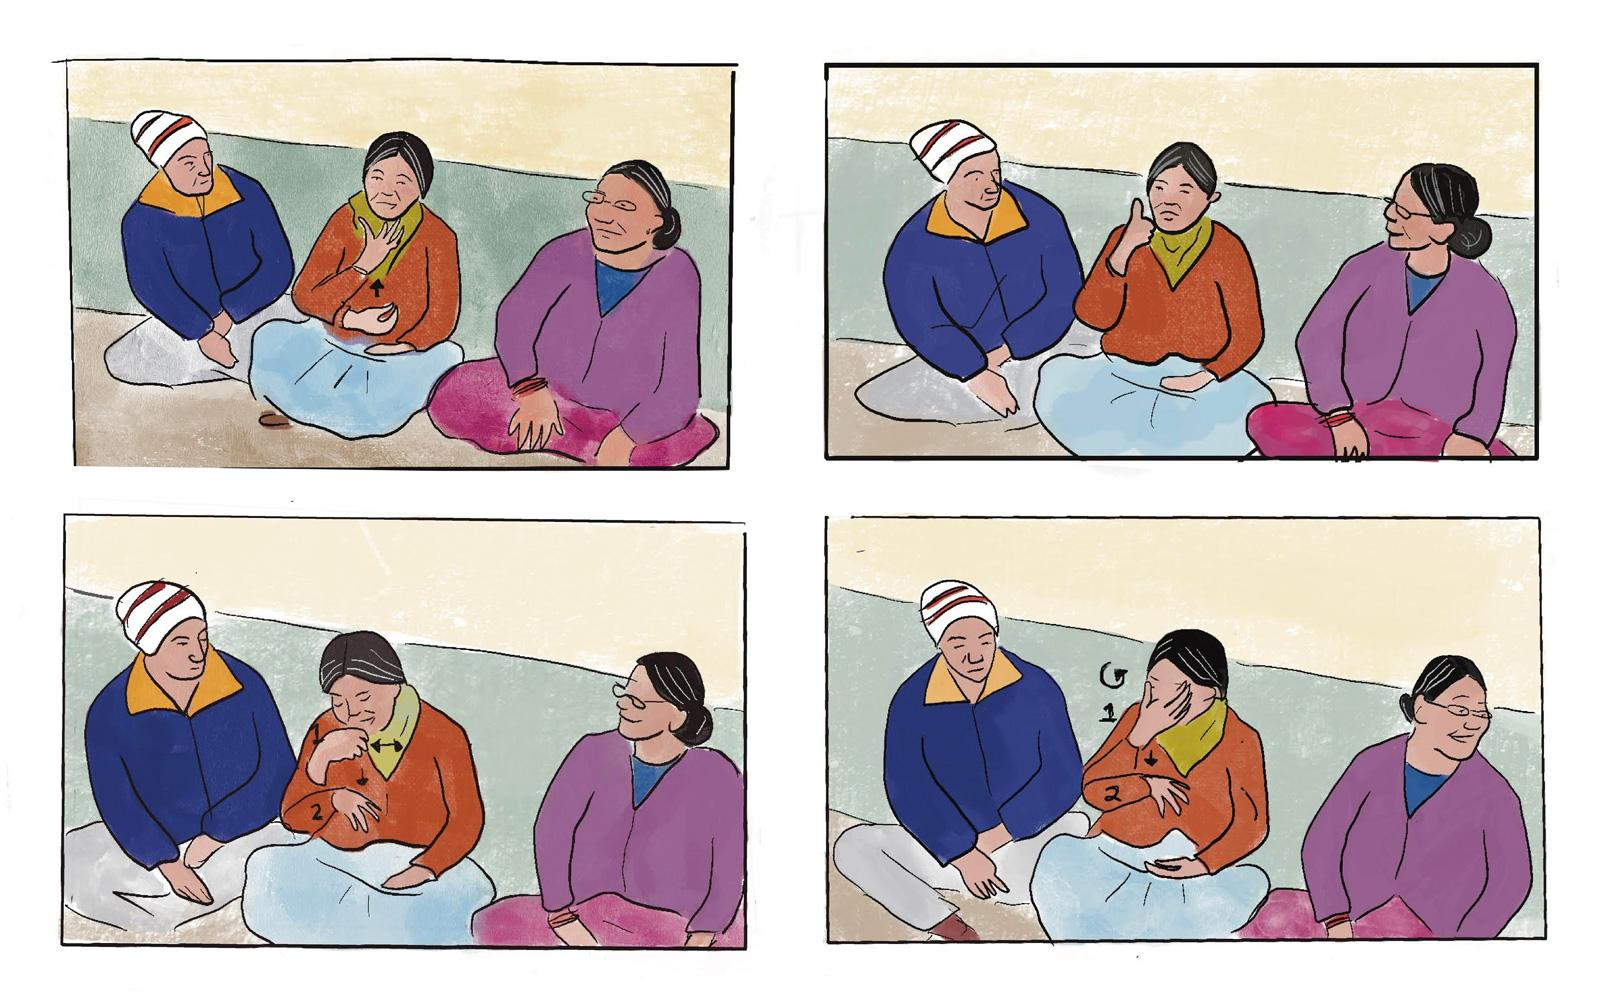 A 4-panel illustration showing 3 people communicating with hand signs.